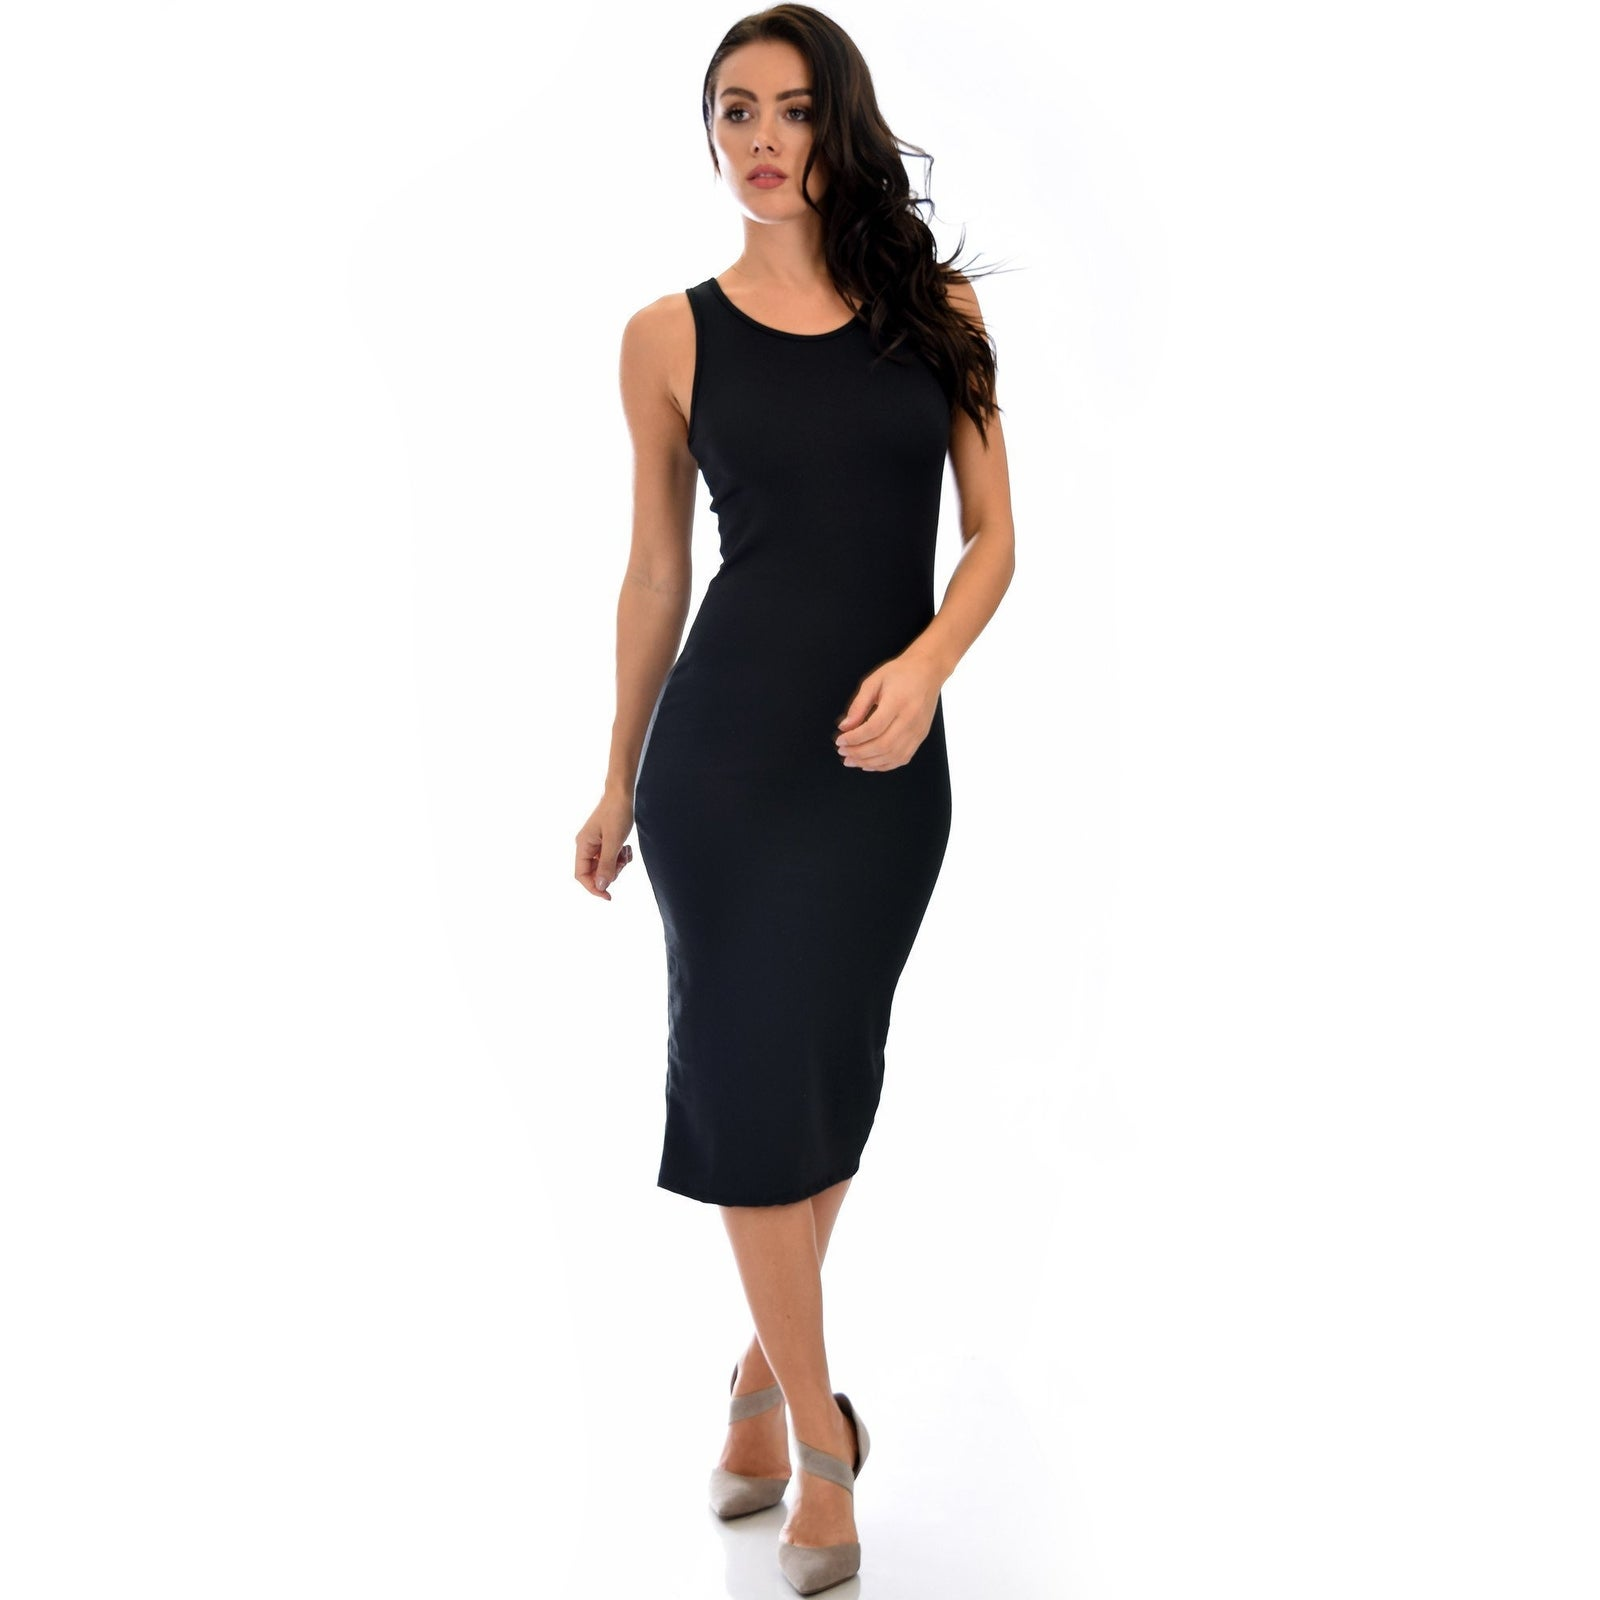 dbbd6918892c Shop Hourglass Bodycon Black Midi Dress -Medium - Free Shipping On Orders  Over $45 - Overstock - 23108715